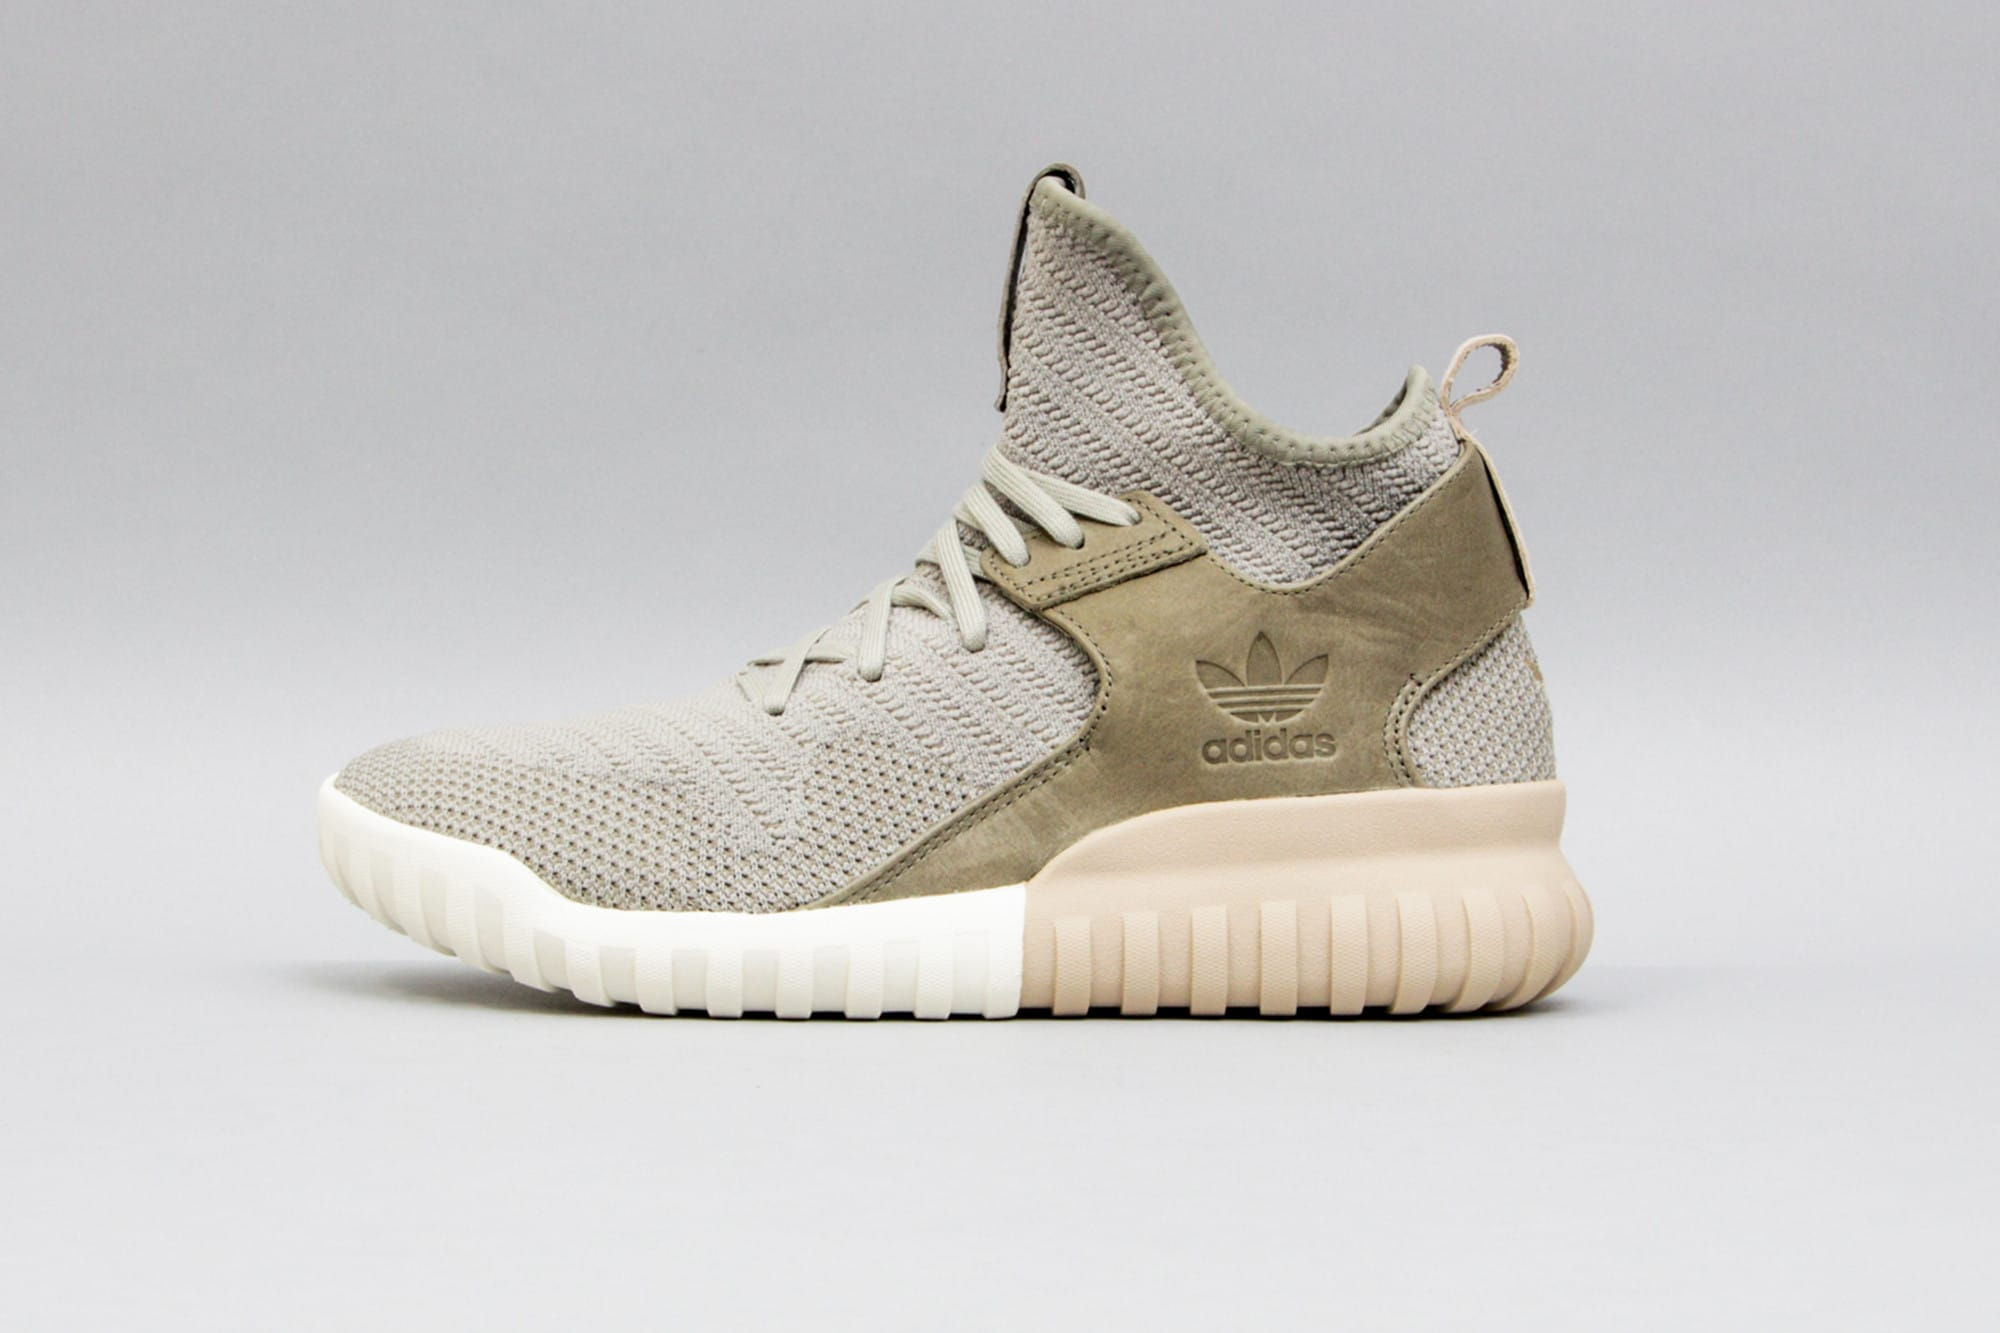 Adidas Tubular X Men 's Taupe Athletic Lifestyle Sneaker Shiekh Shoes